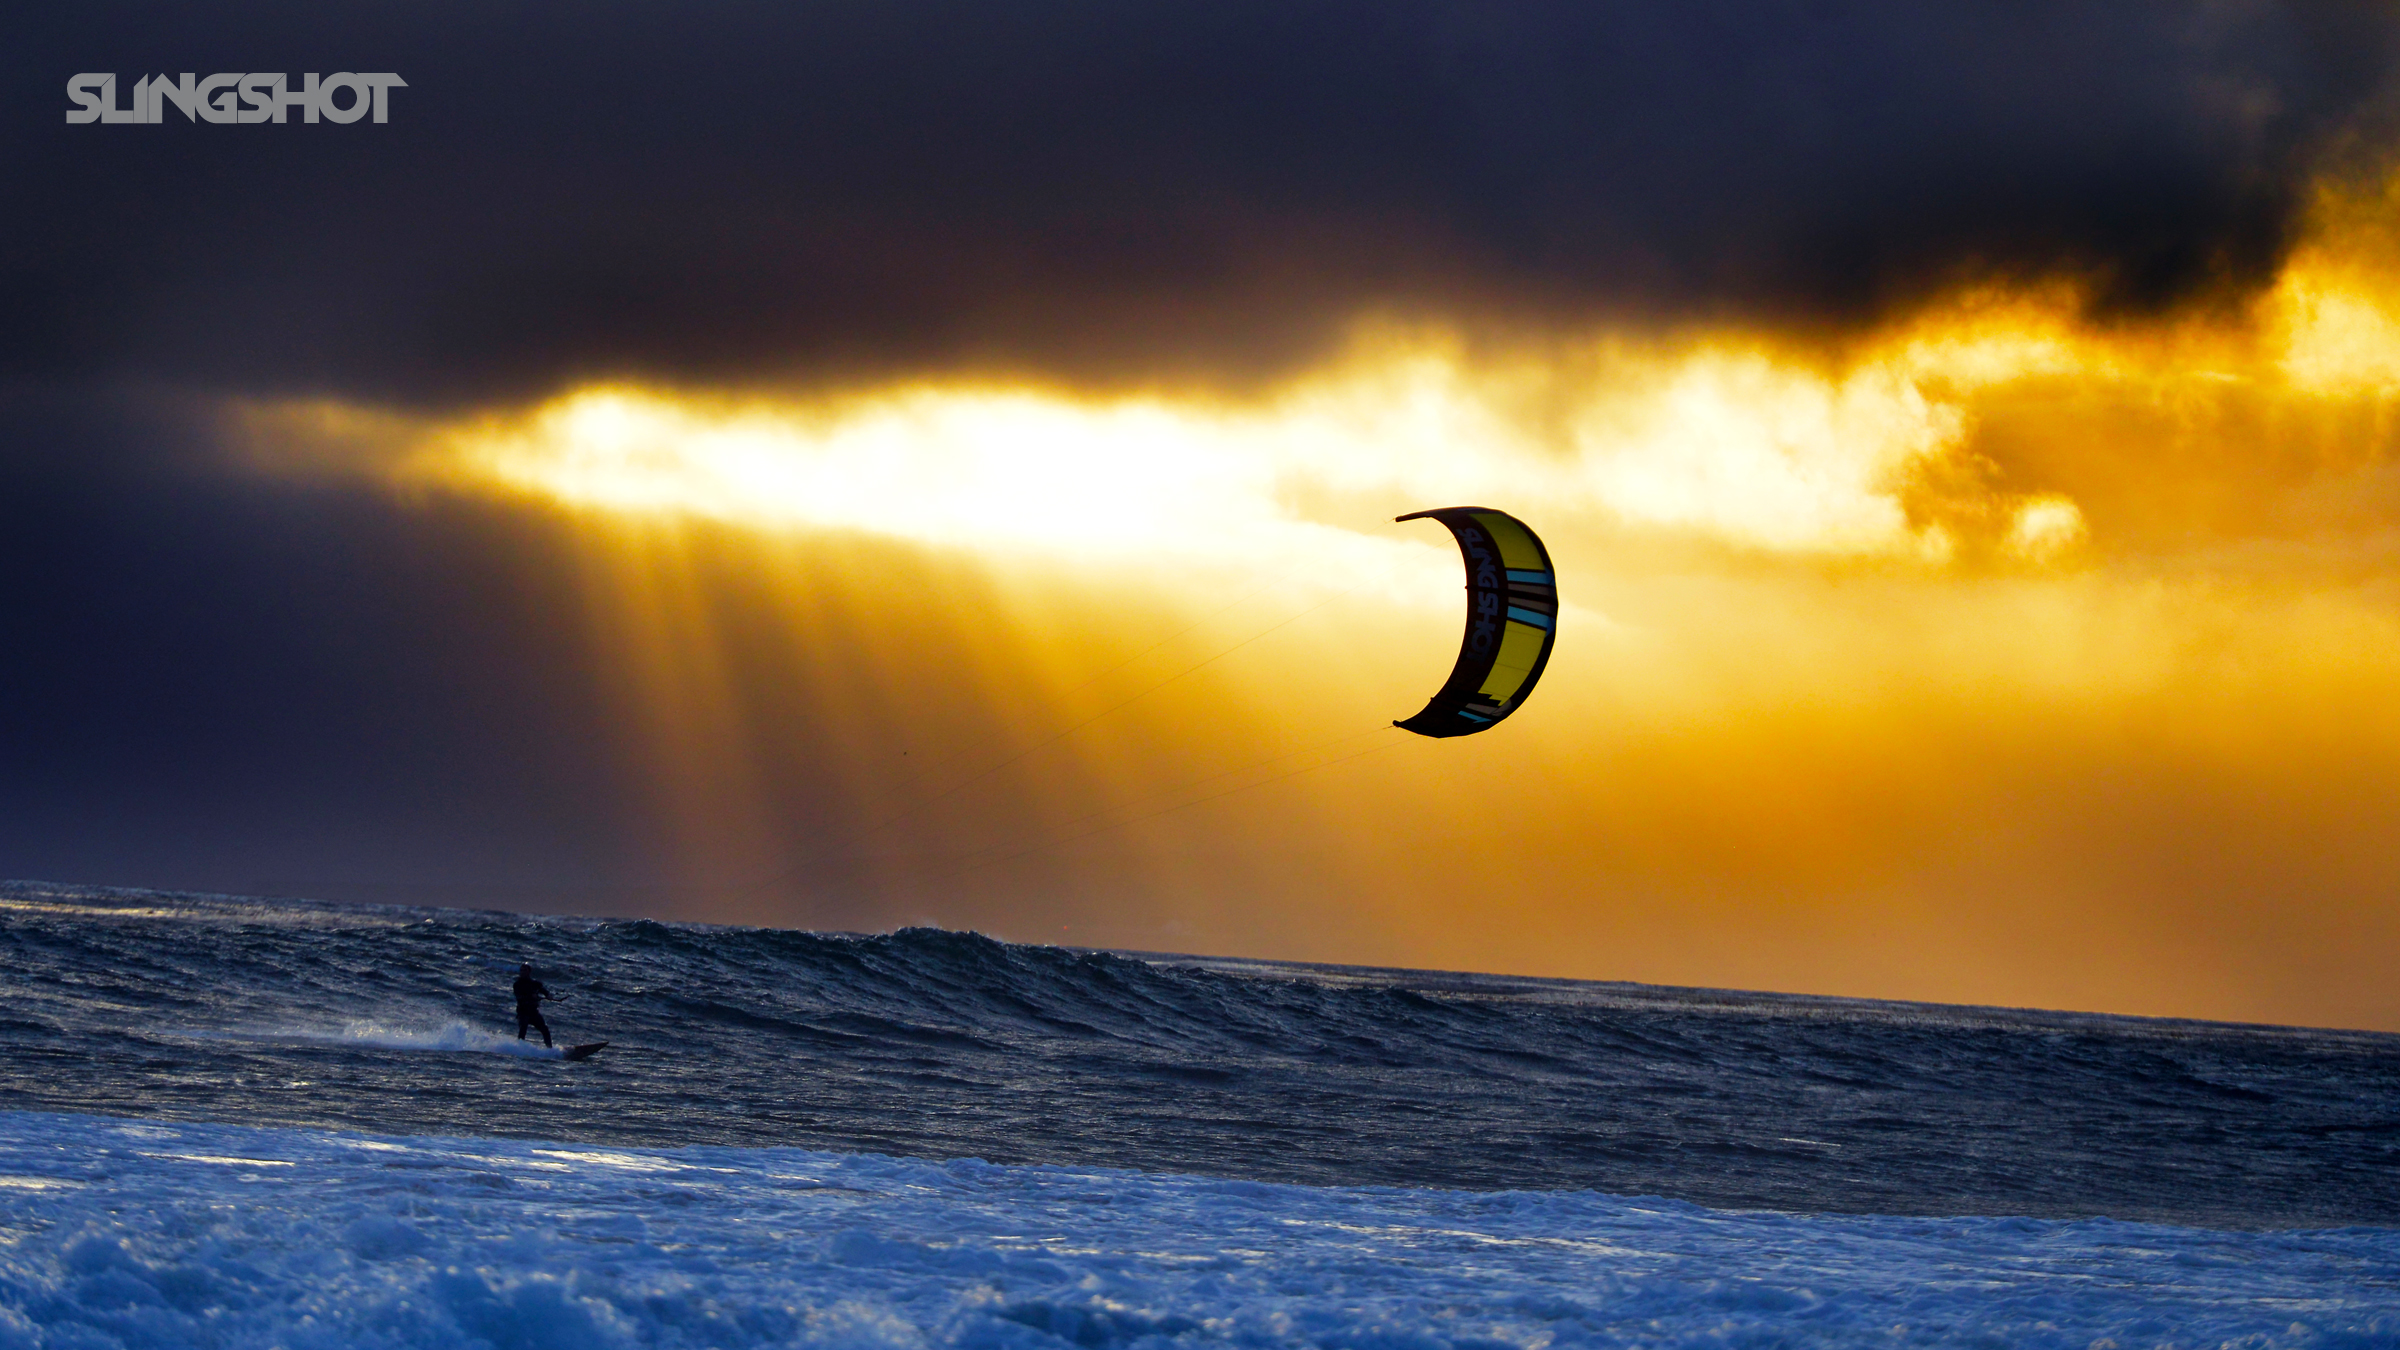 kitesurf wallpaper image - A kitesurfer cruising at sunset with his 2016 Slingshot Wave SST kite. - in resolution: High Definition - HD 16:9 2400 X 1350